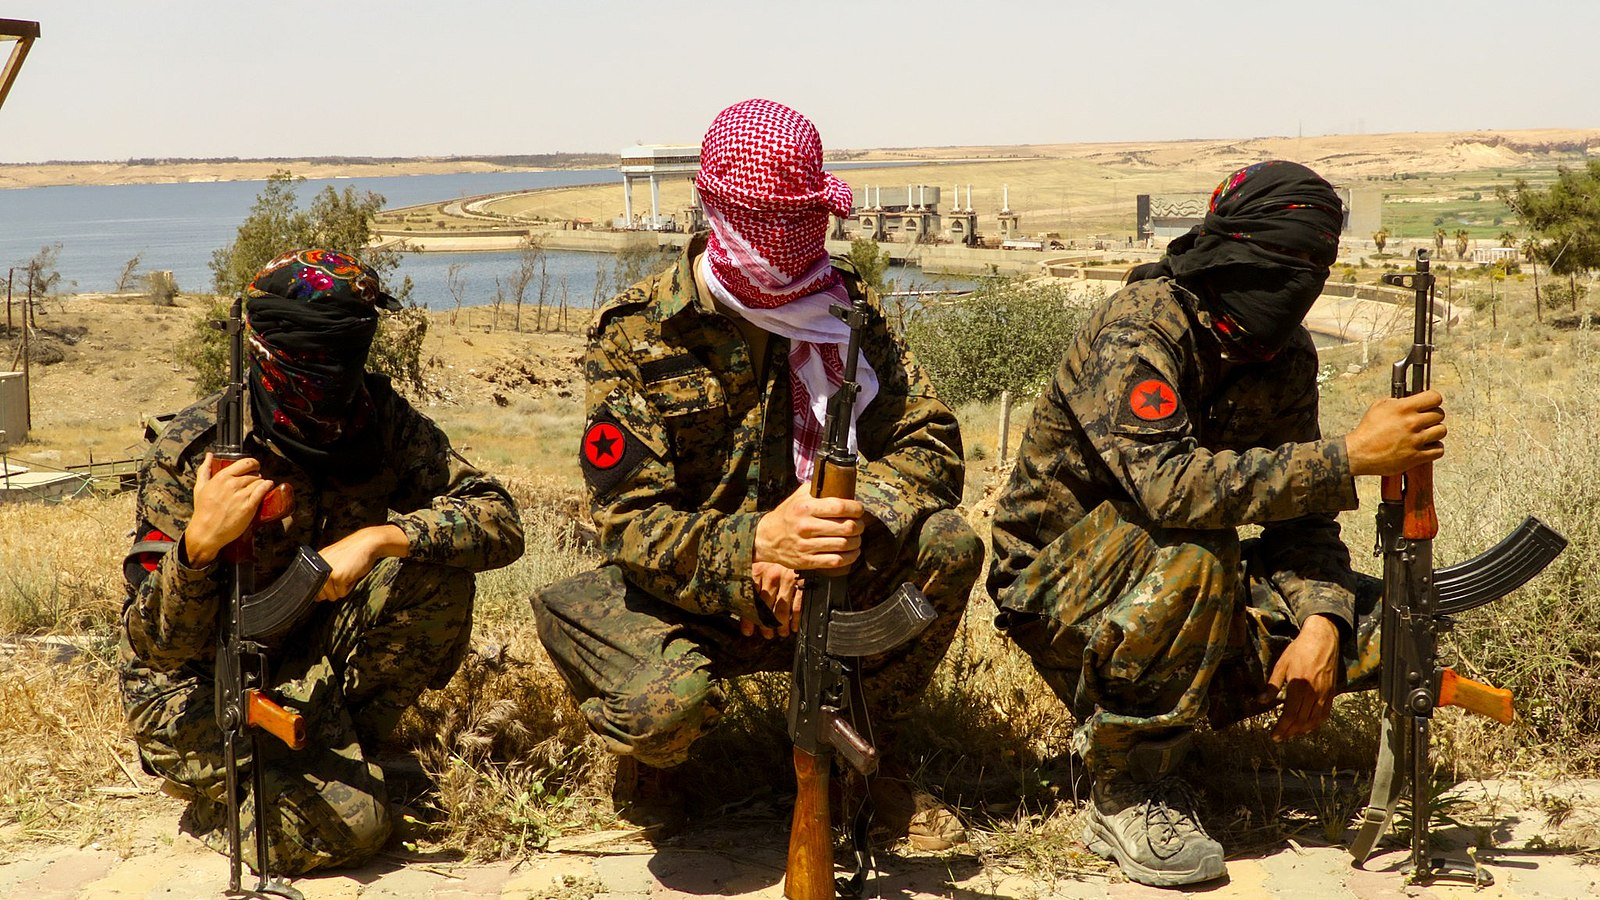 IRPGF fighters, an anarchist communist collective fighting ISIS and considered a terrorist organization, in Tabqa during the Syrian civil war in 2017.  The group dissolved in 2018. Photo via  Creative Commons .